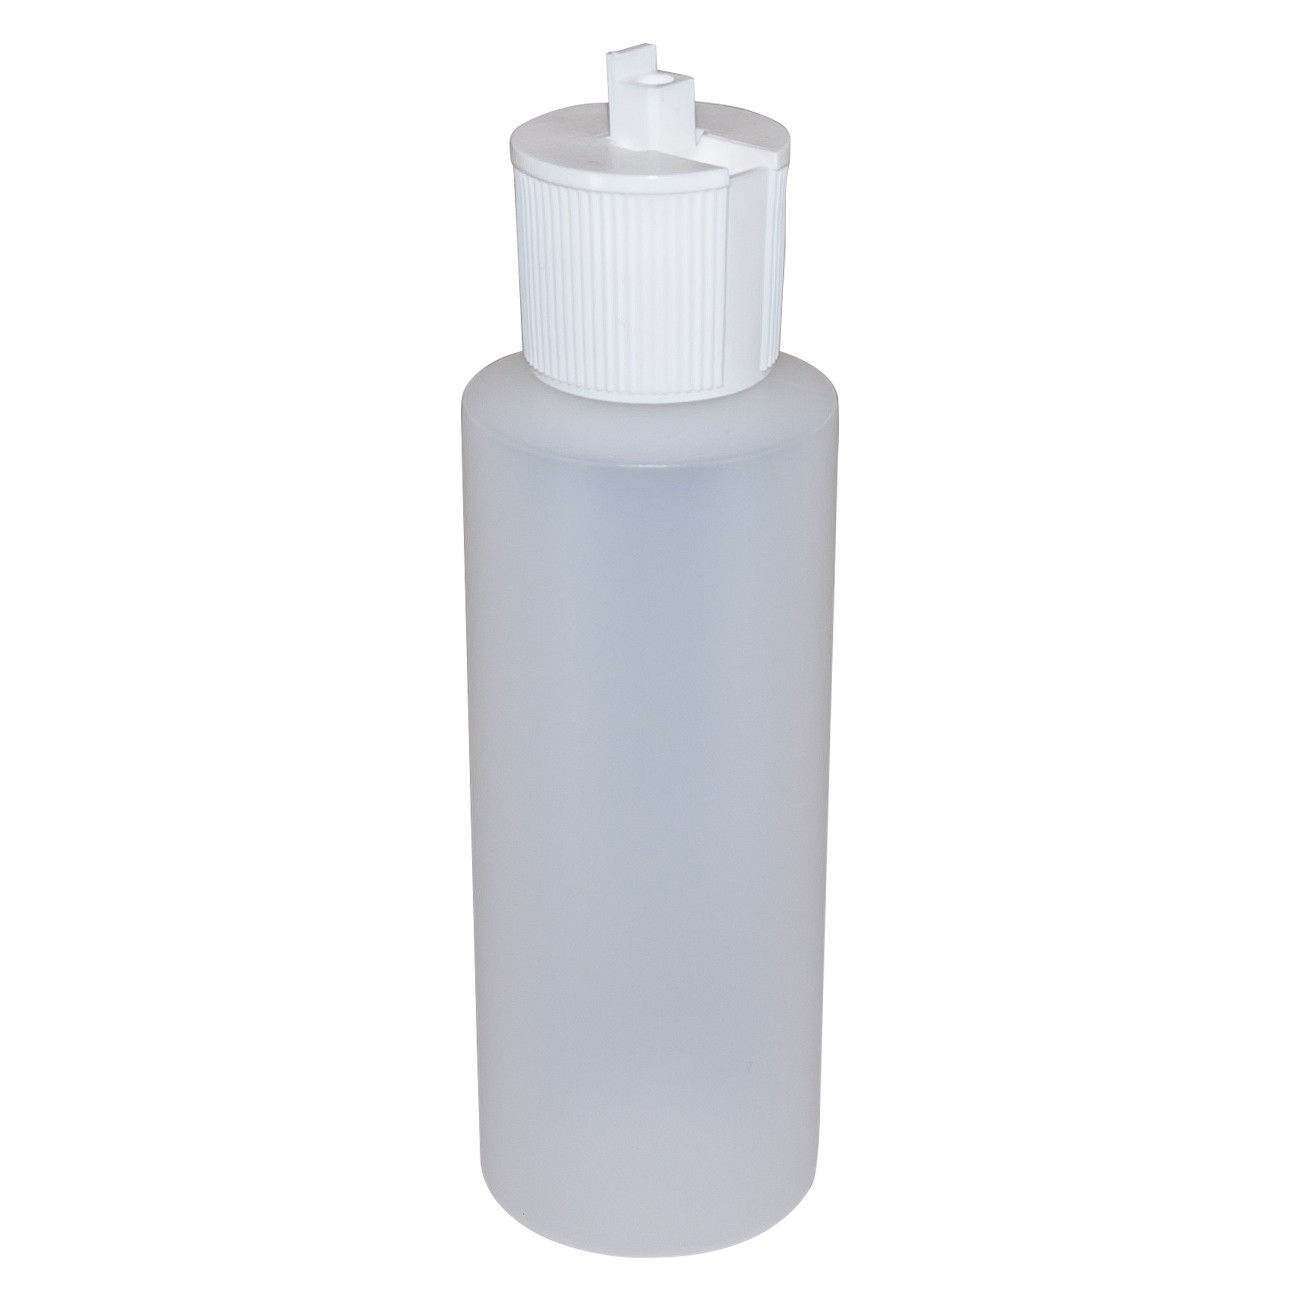 4oz Squeeze Bottle with Easy Flip Top